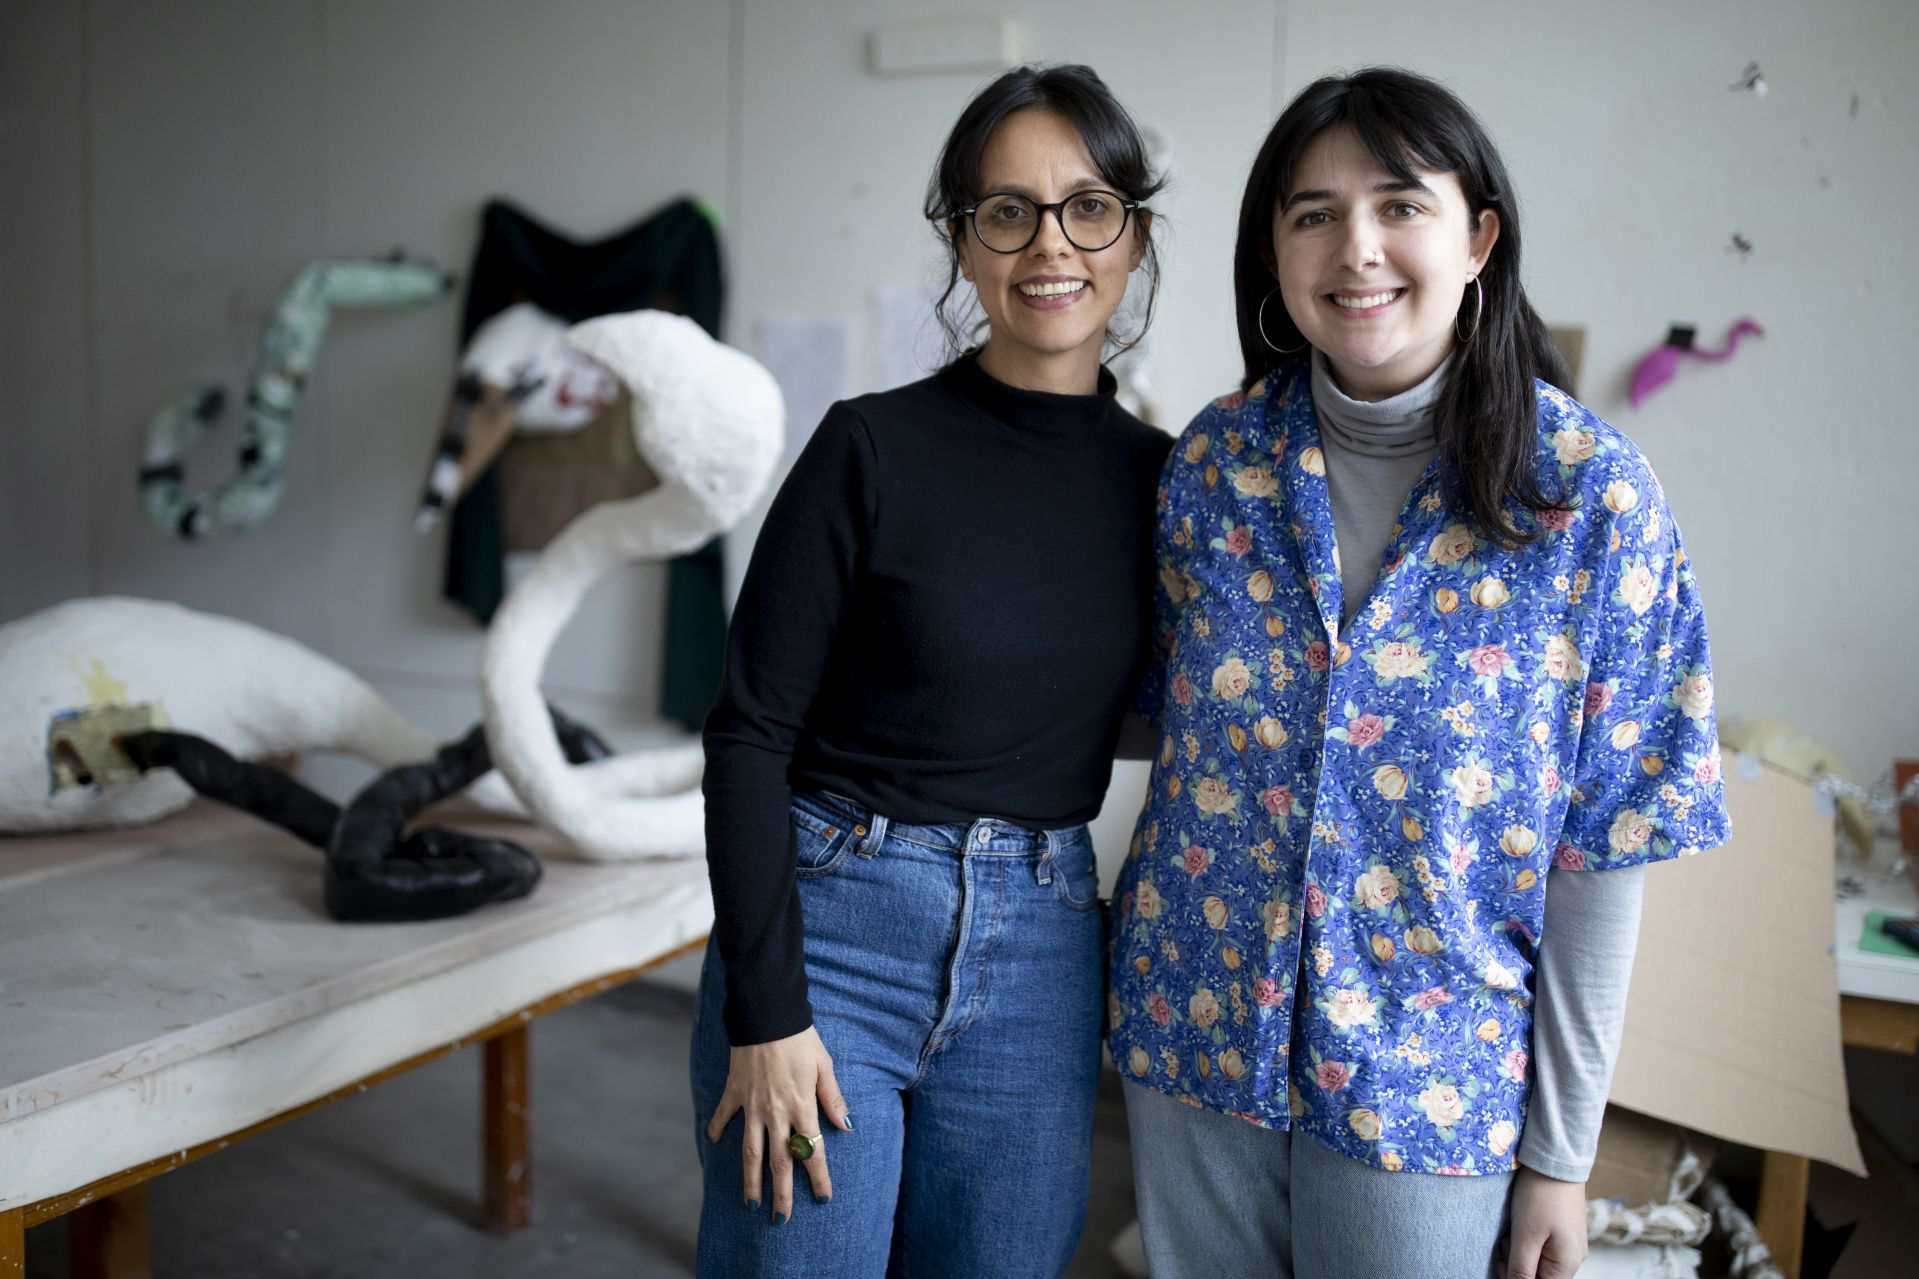 Eden Rickolt '20 of Landenberg, Pa., with Carolina Gonzalez Valencia, assistant professor of art and visual culture, in Rickolt's visual art senior thesis studio on the ground floor of the Olin Arts Center.